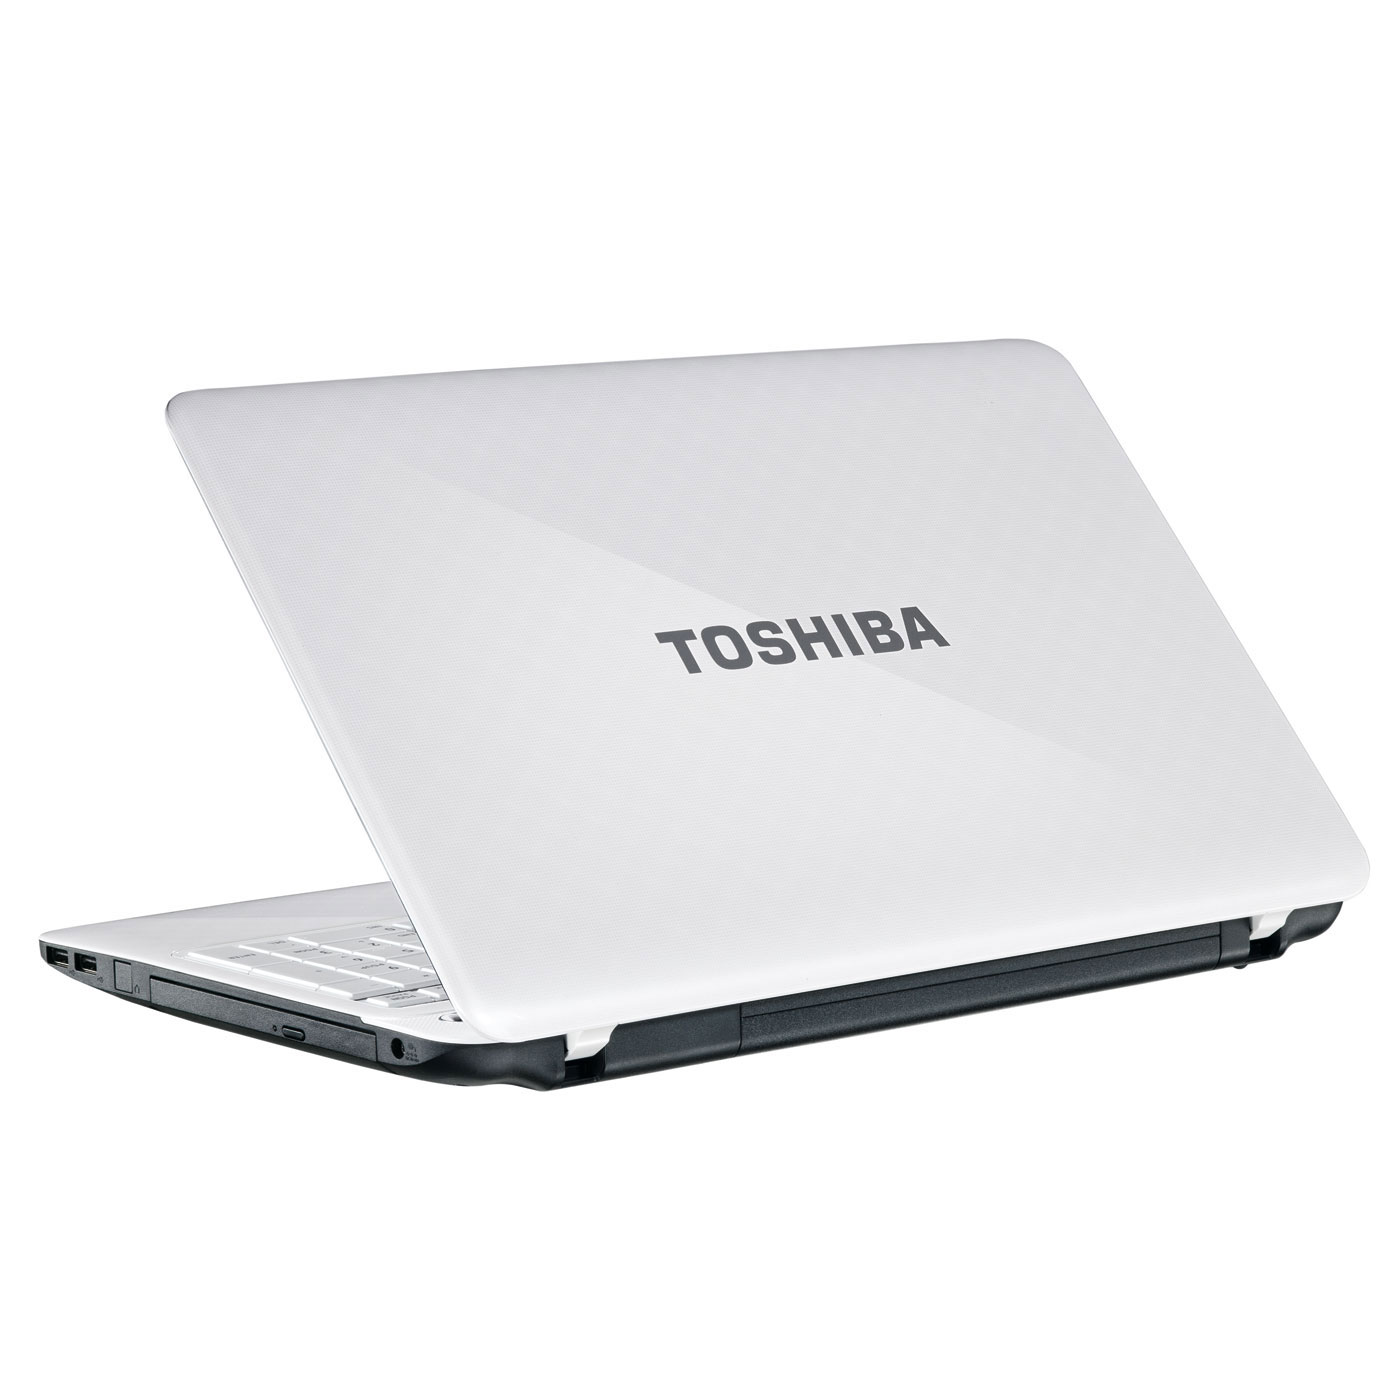 toshiba satellite l755 1gg blanc pc portable toshiba sur. Black Bedroom Furniture Sets. Home Design Ideas